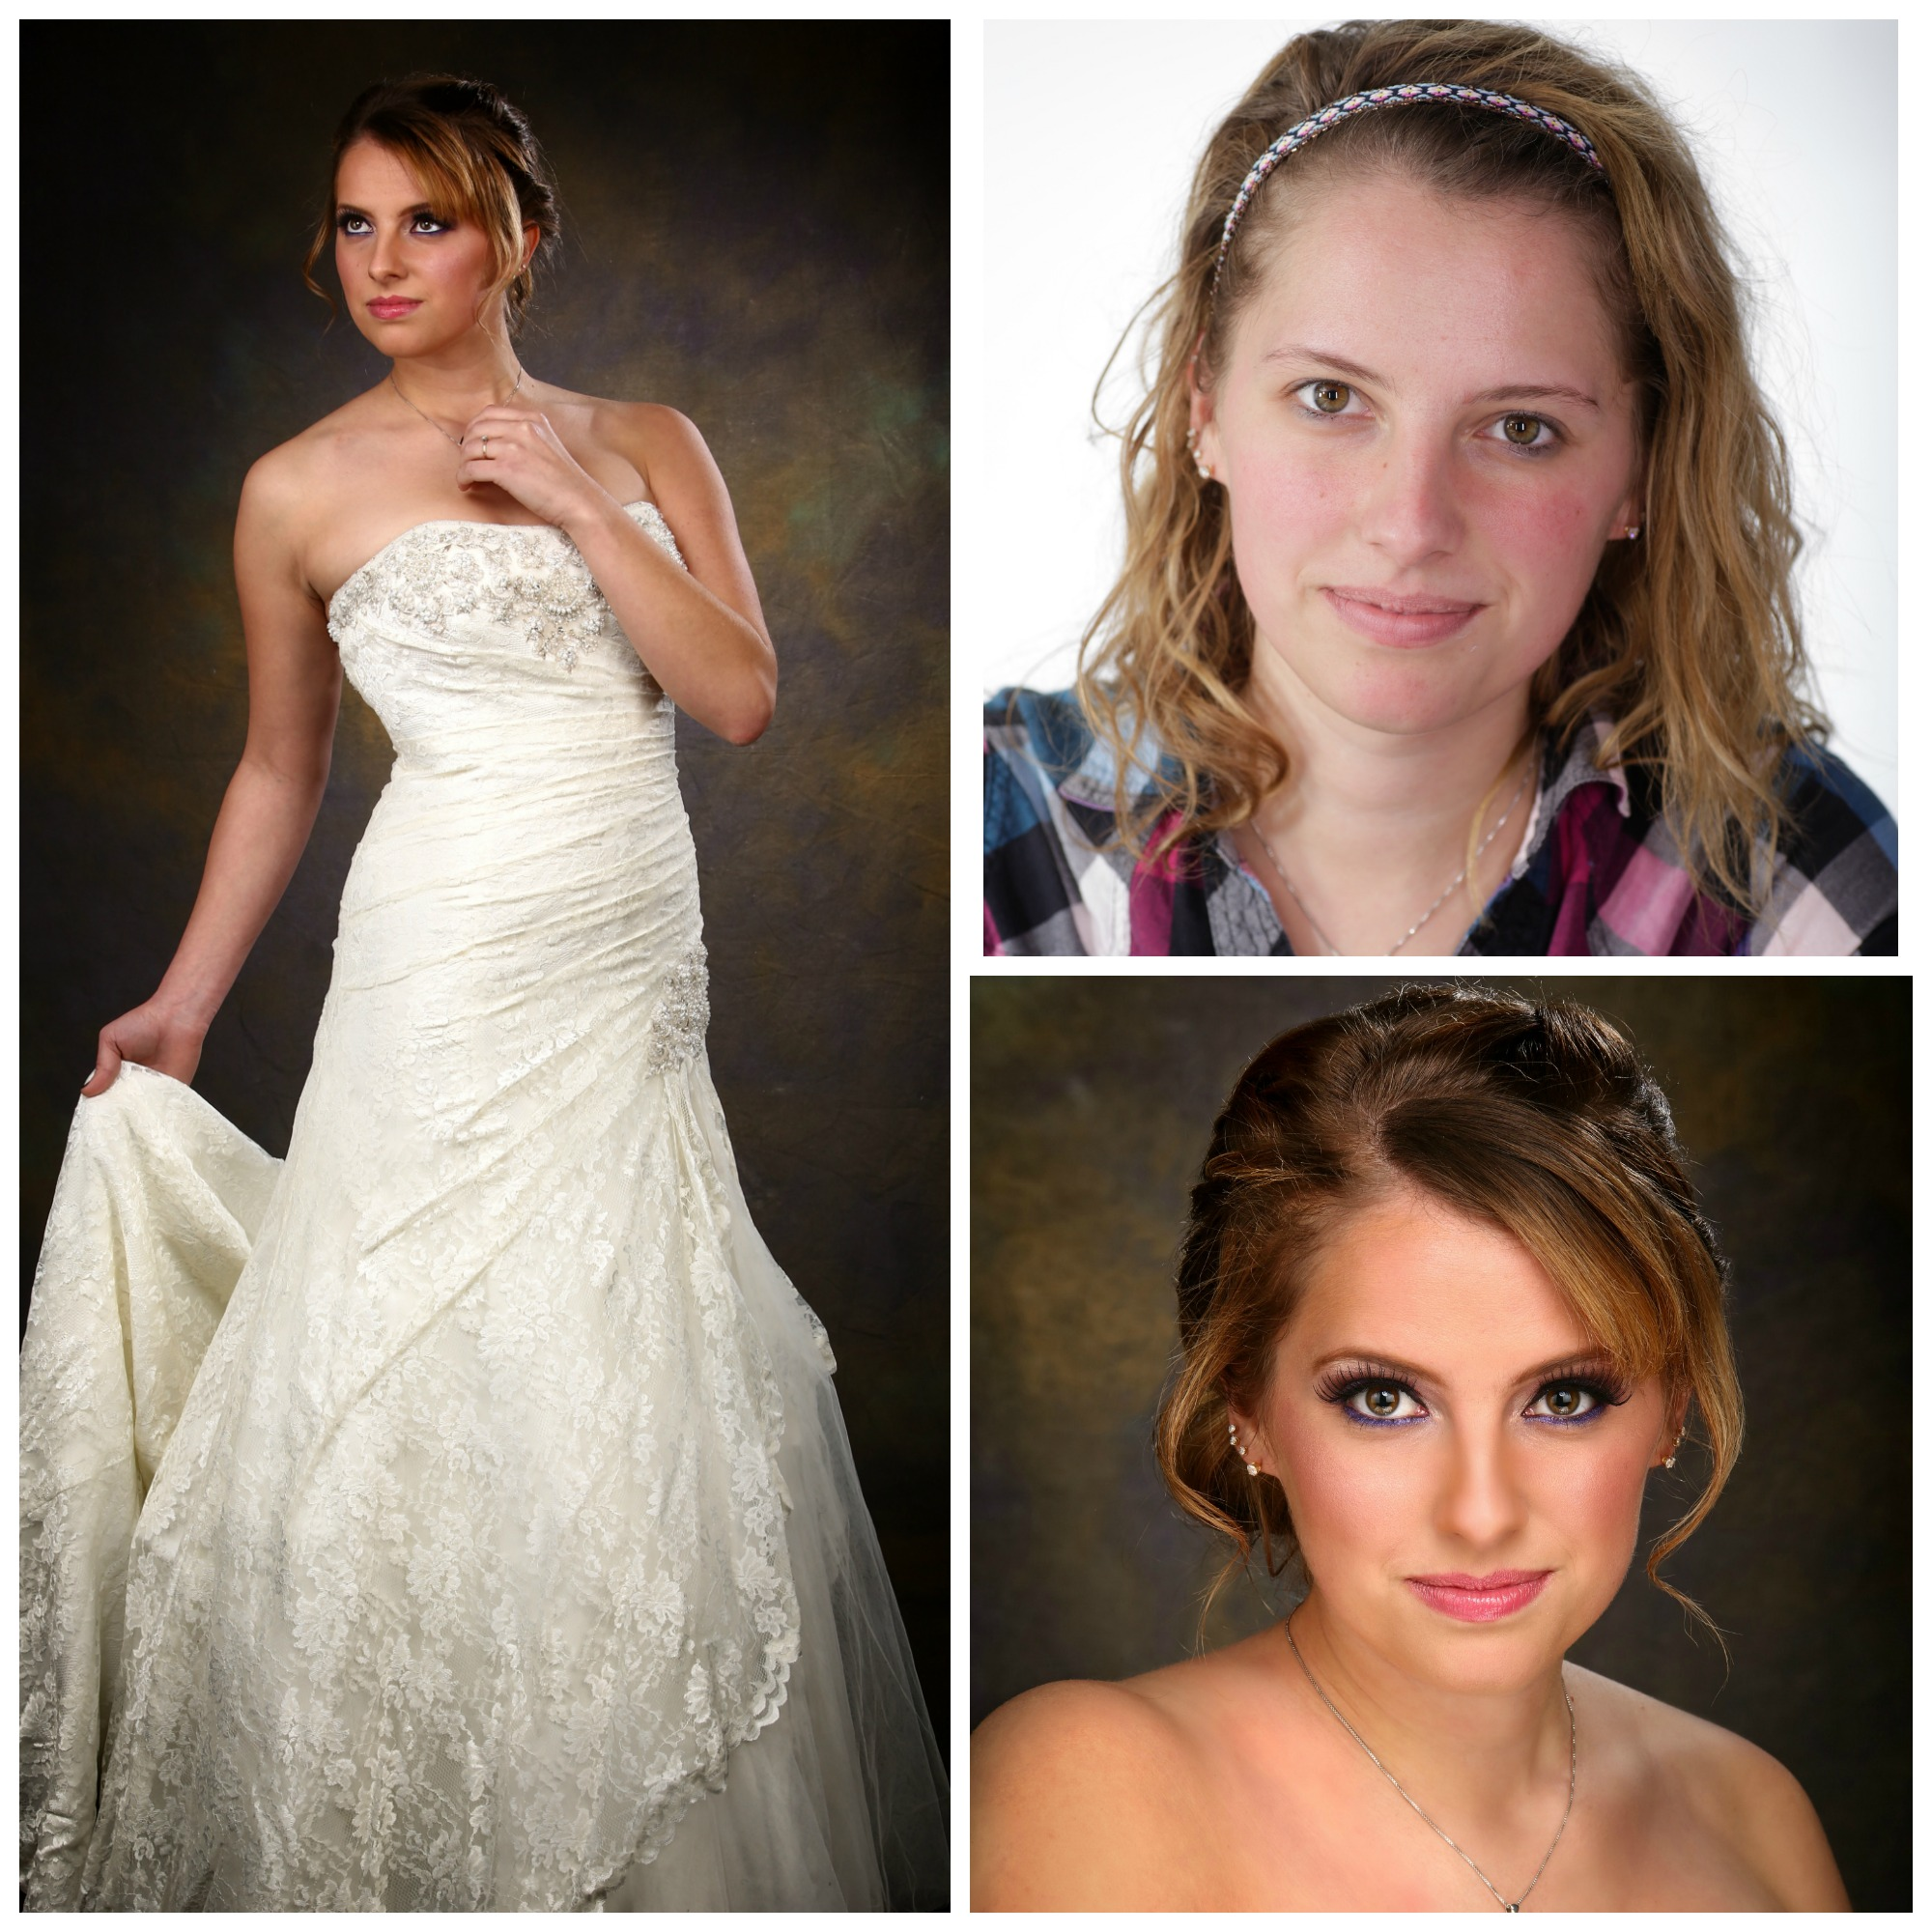 Before and after hair and makeup. Makeup by Krystal Salisbury